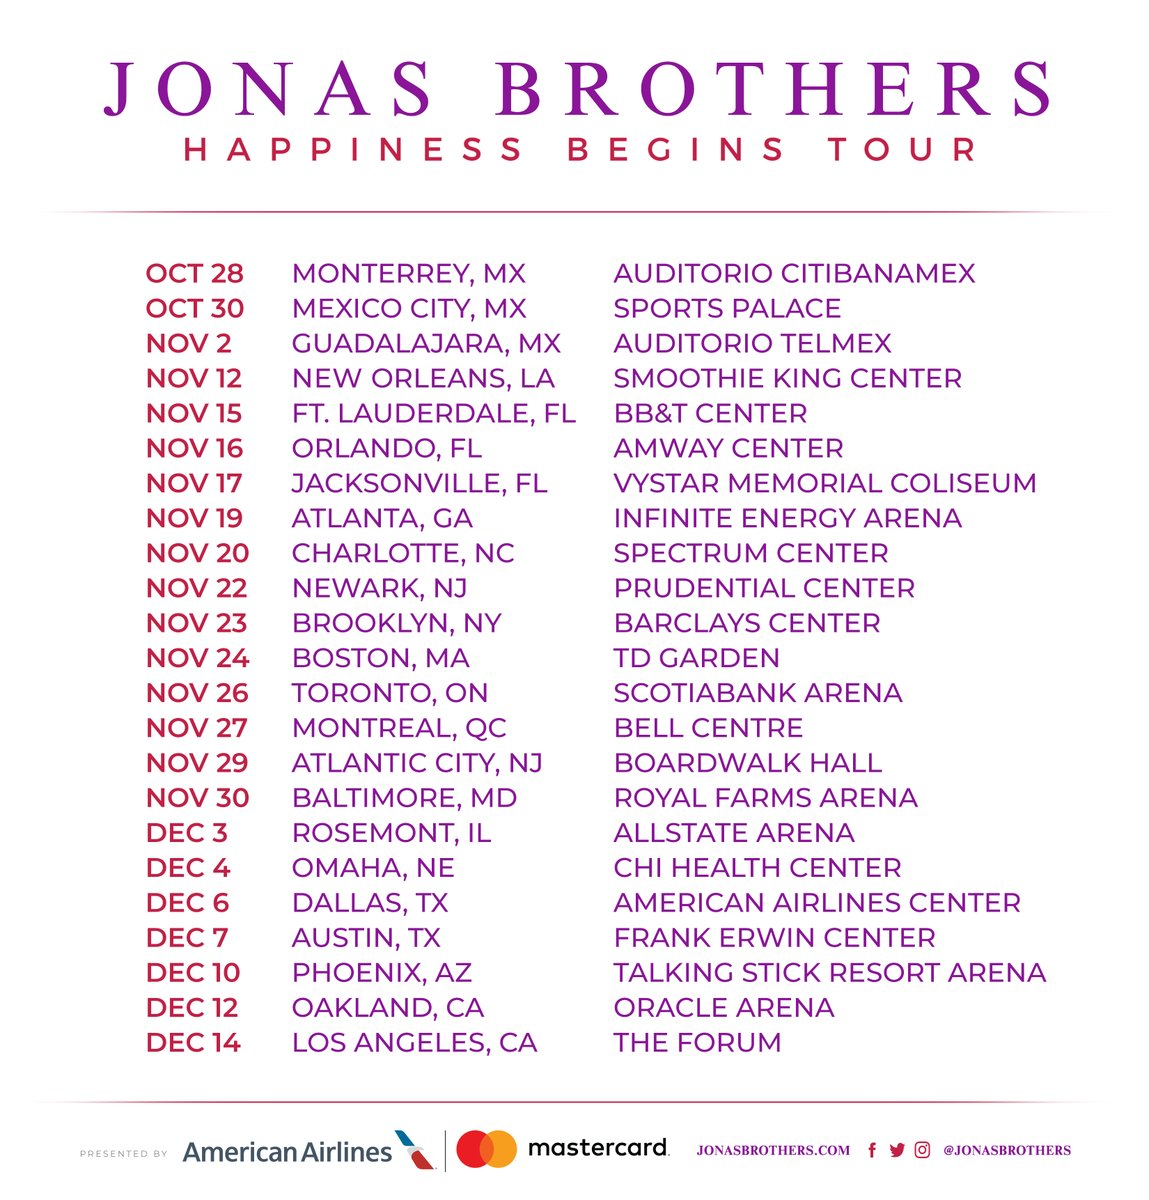 The Jonas Brothers Happiness Begins tour